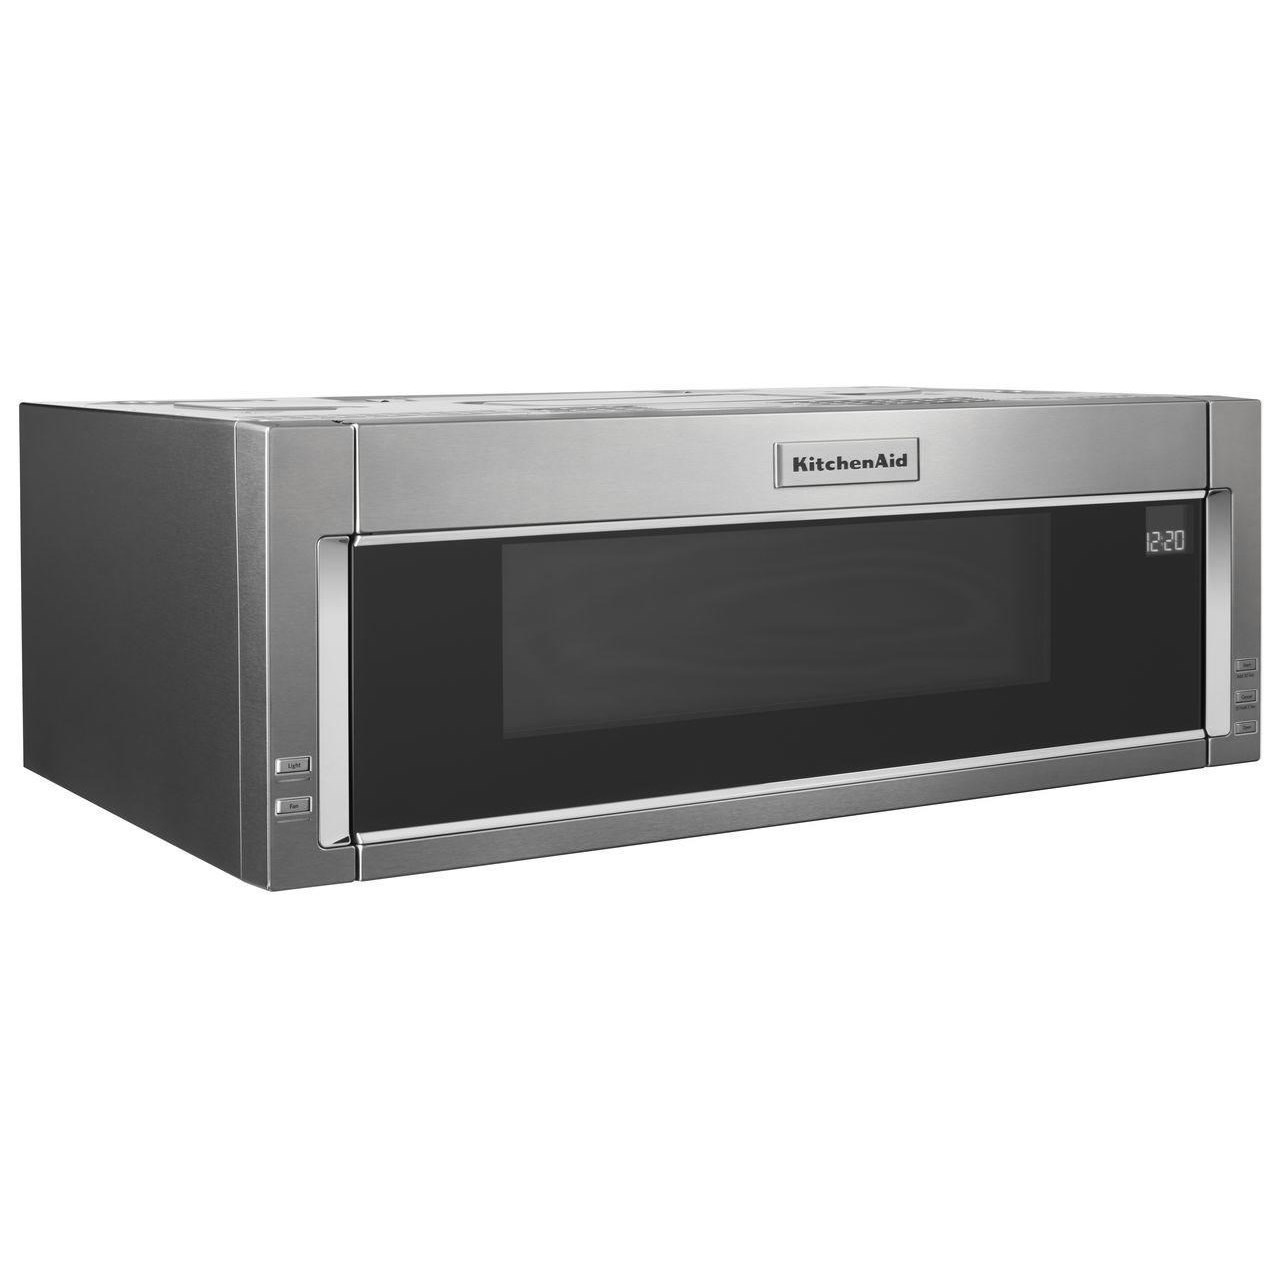 microwaves kitchenaid 1000 watt low profile microwave hood combination by kitchenaid at furniture and appliancemart